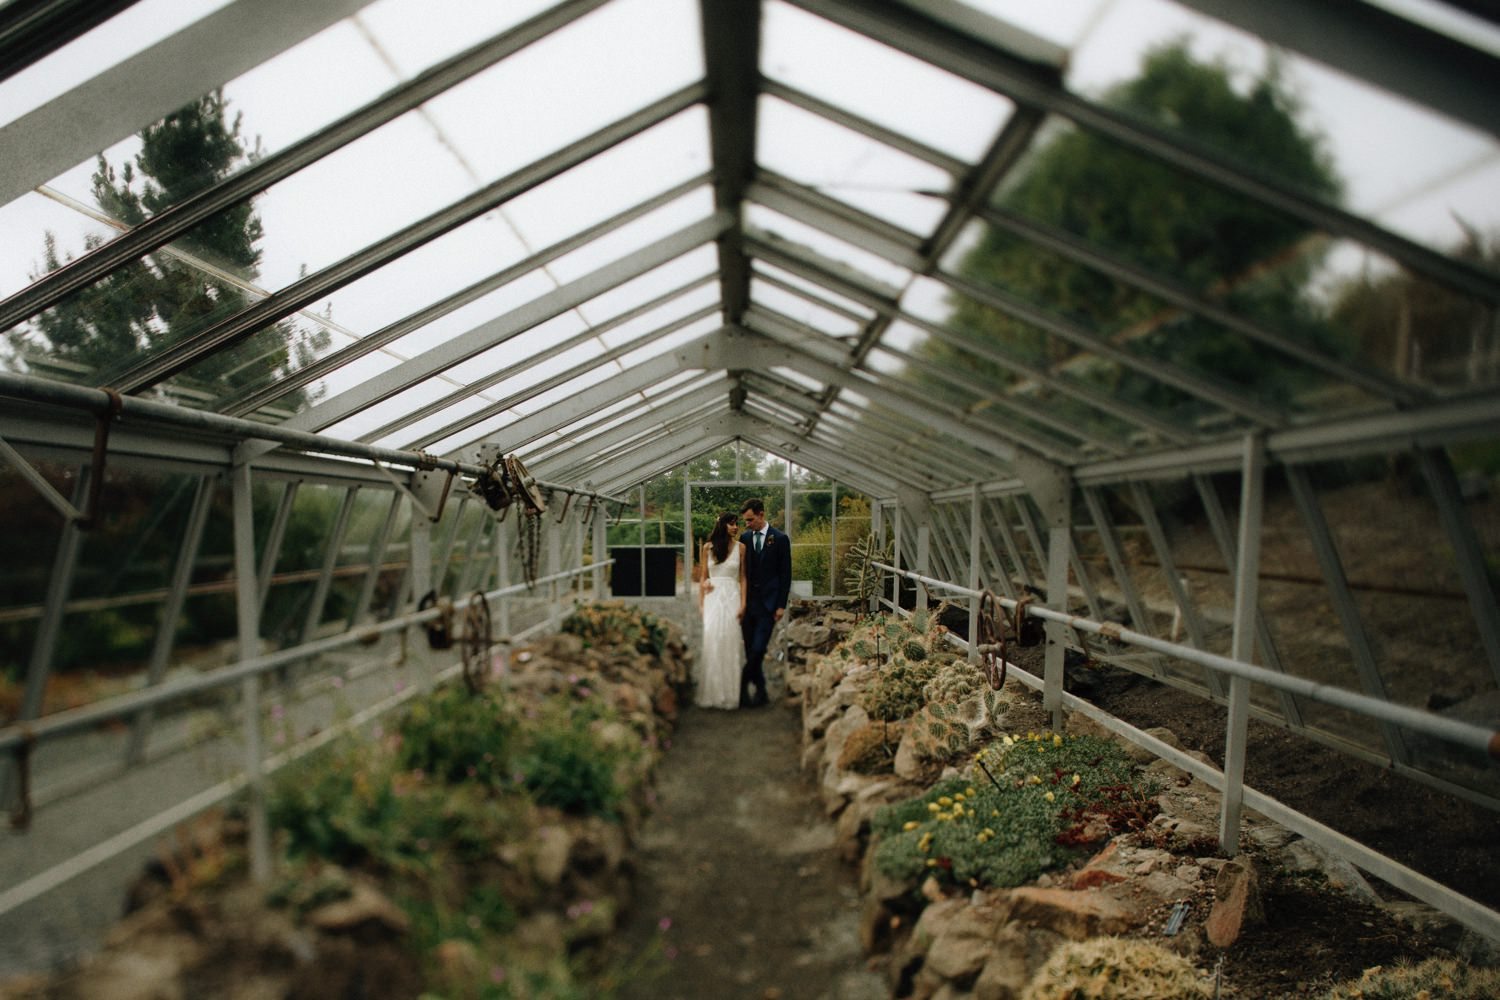 best photo locations at ubc featuring ubc botanical garden greenhouse